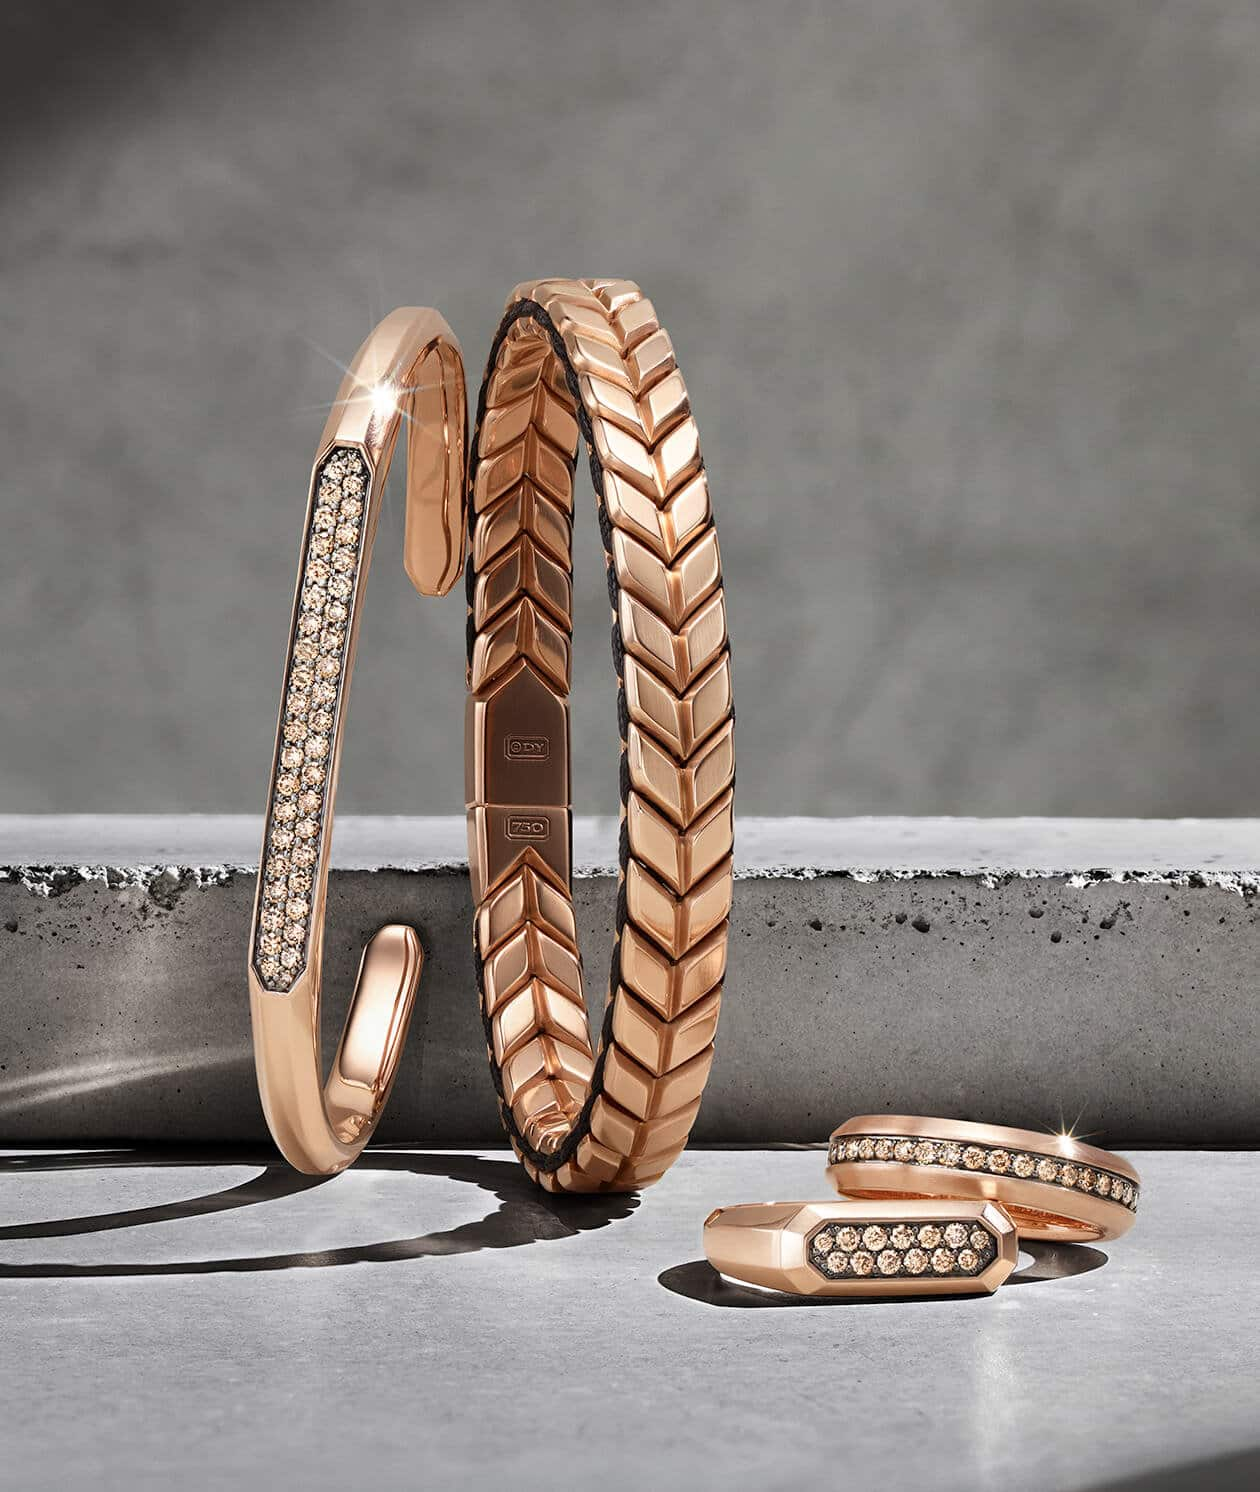 David Yurman Streamline® and Chevron bracelets and rings in 18K rose gold with or without cognac diamonds, arranged in a group on and against light grey stone blocks and casting long shadows.